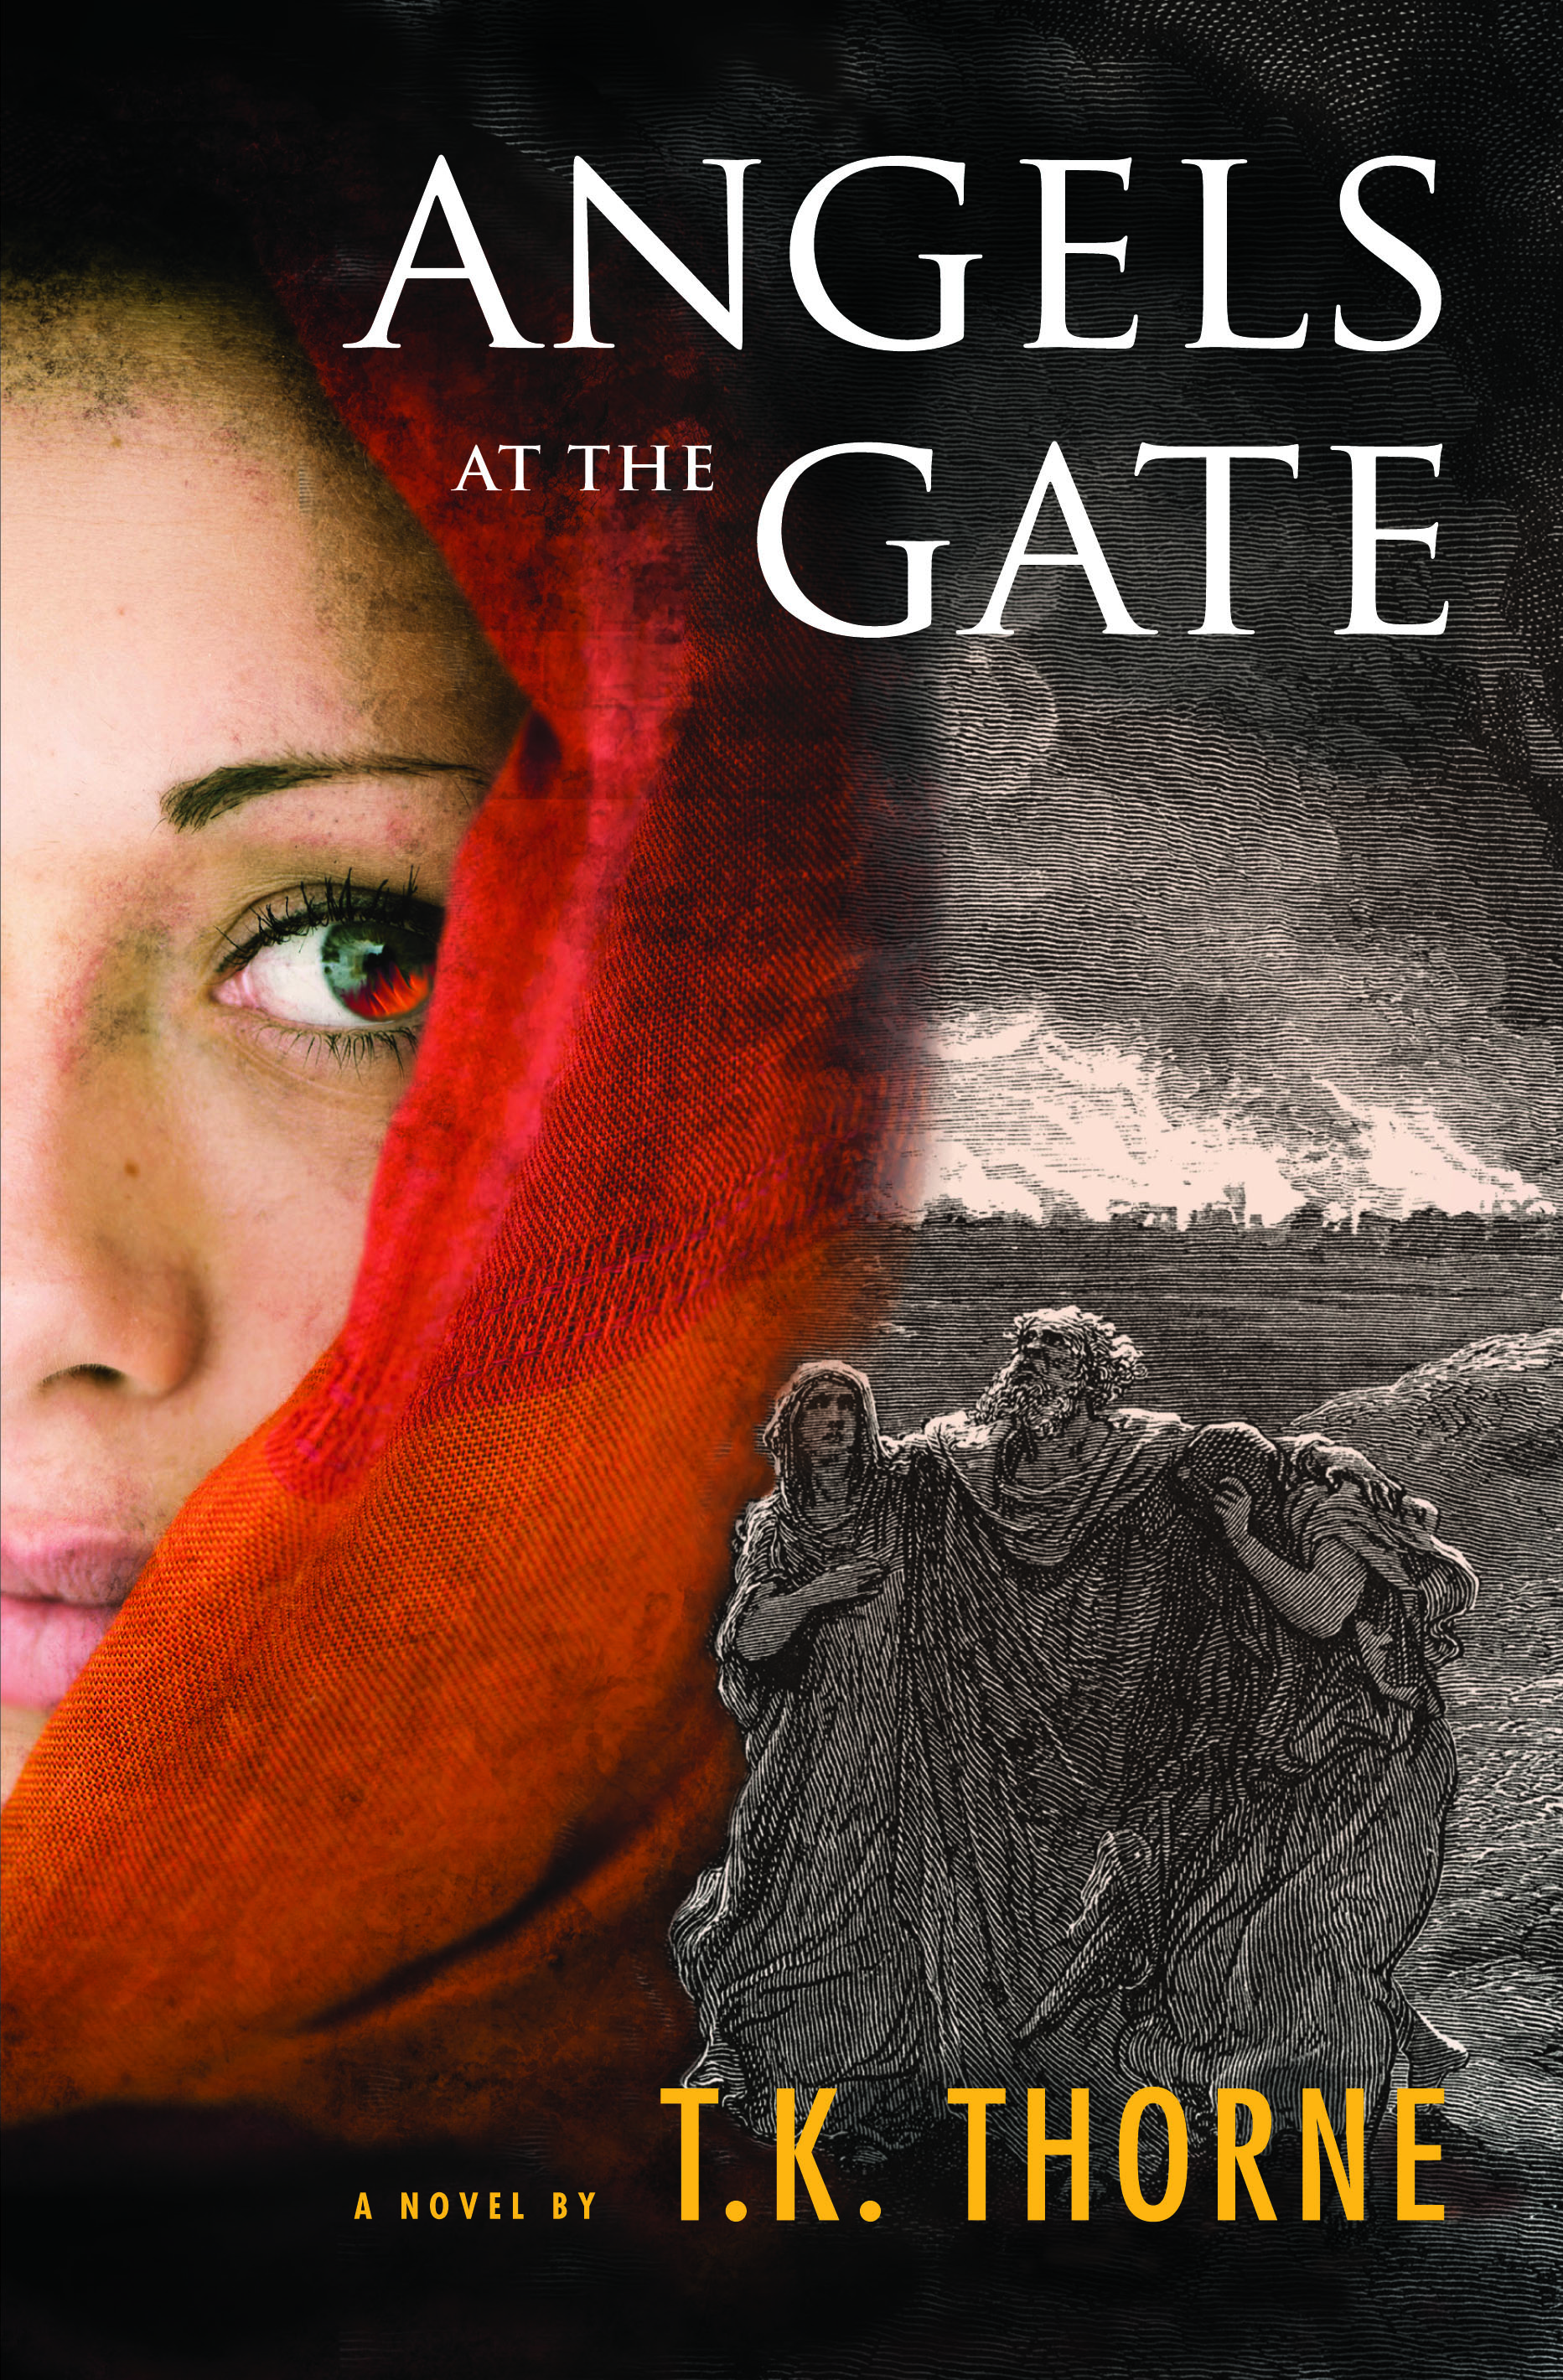 Angels at the Gate by T.K. Thorne – Blog Tour, Book Review and Giveaway #AngelsattheGateBlogTour